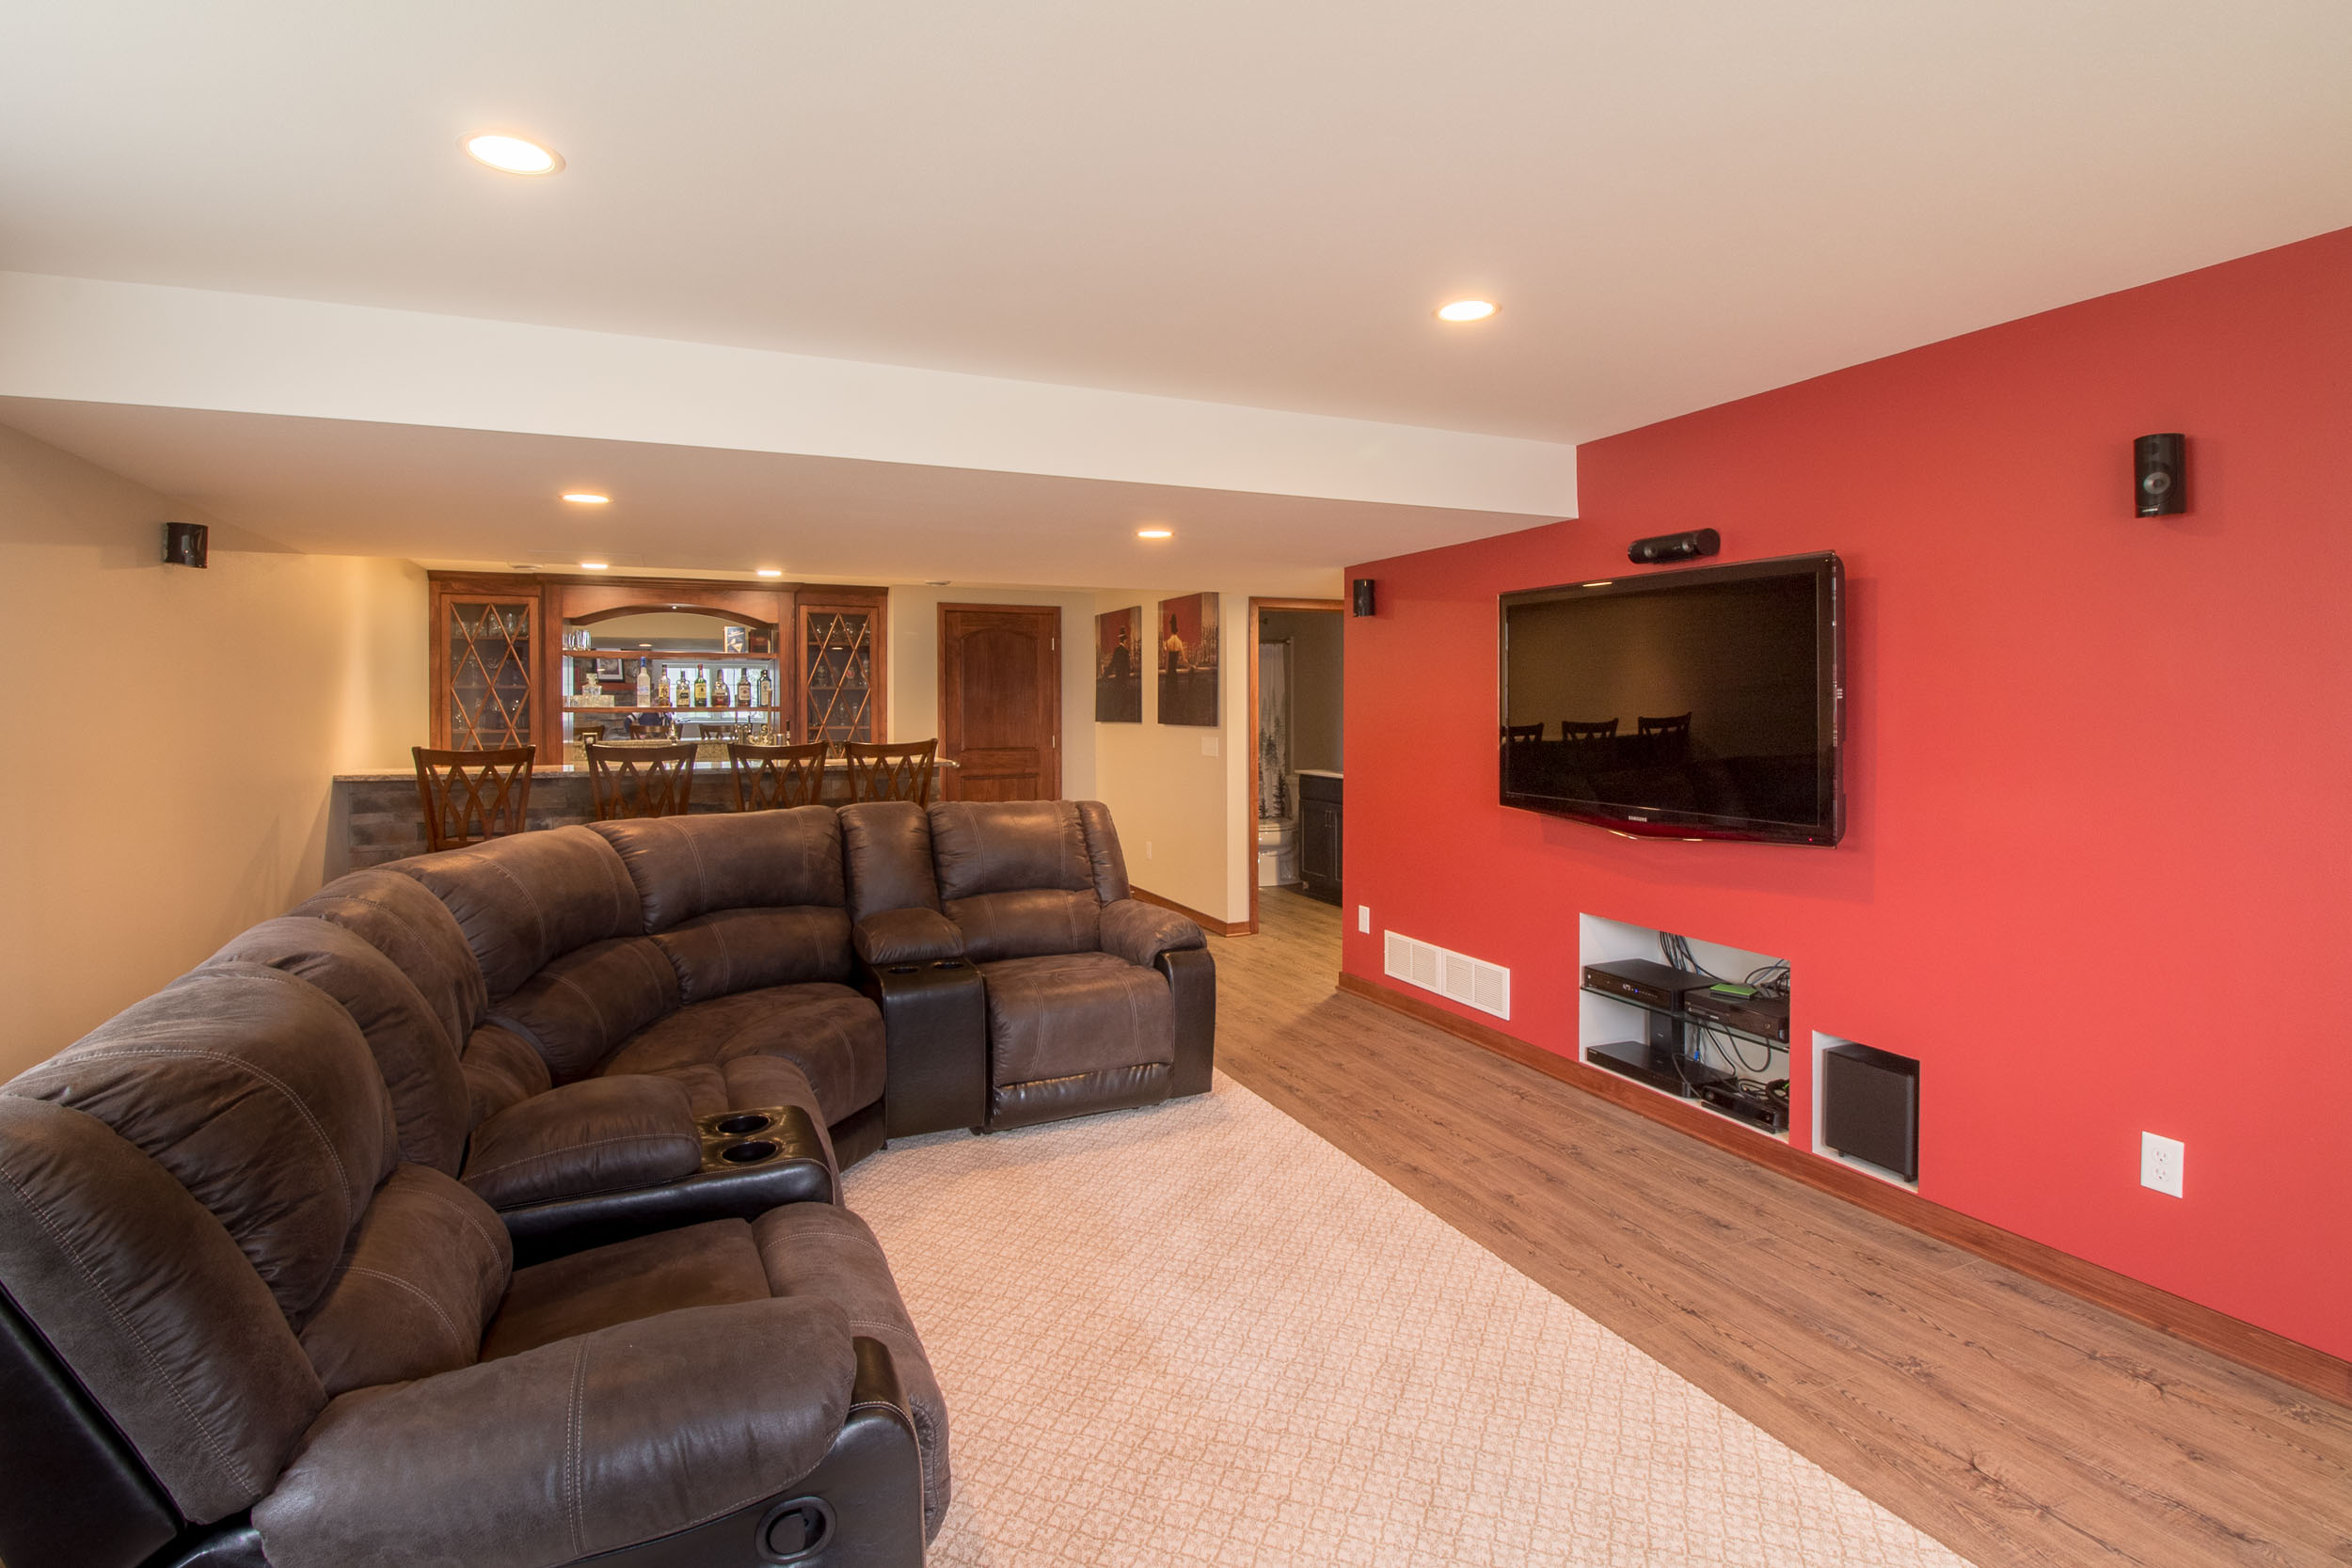 - A column was removed to create this open-concept living space in this finished lower level.